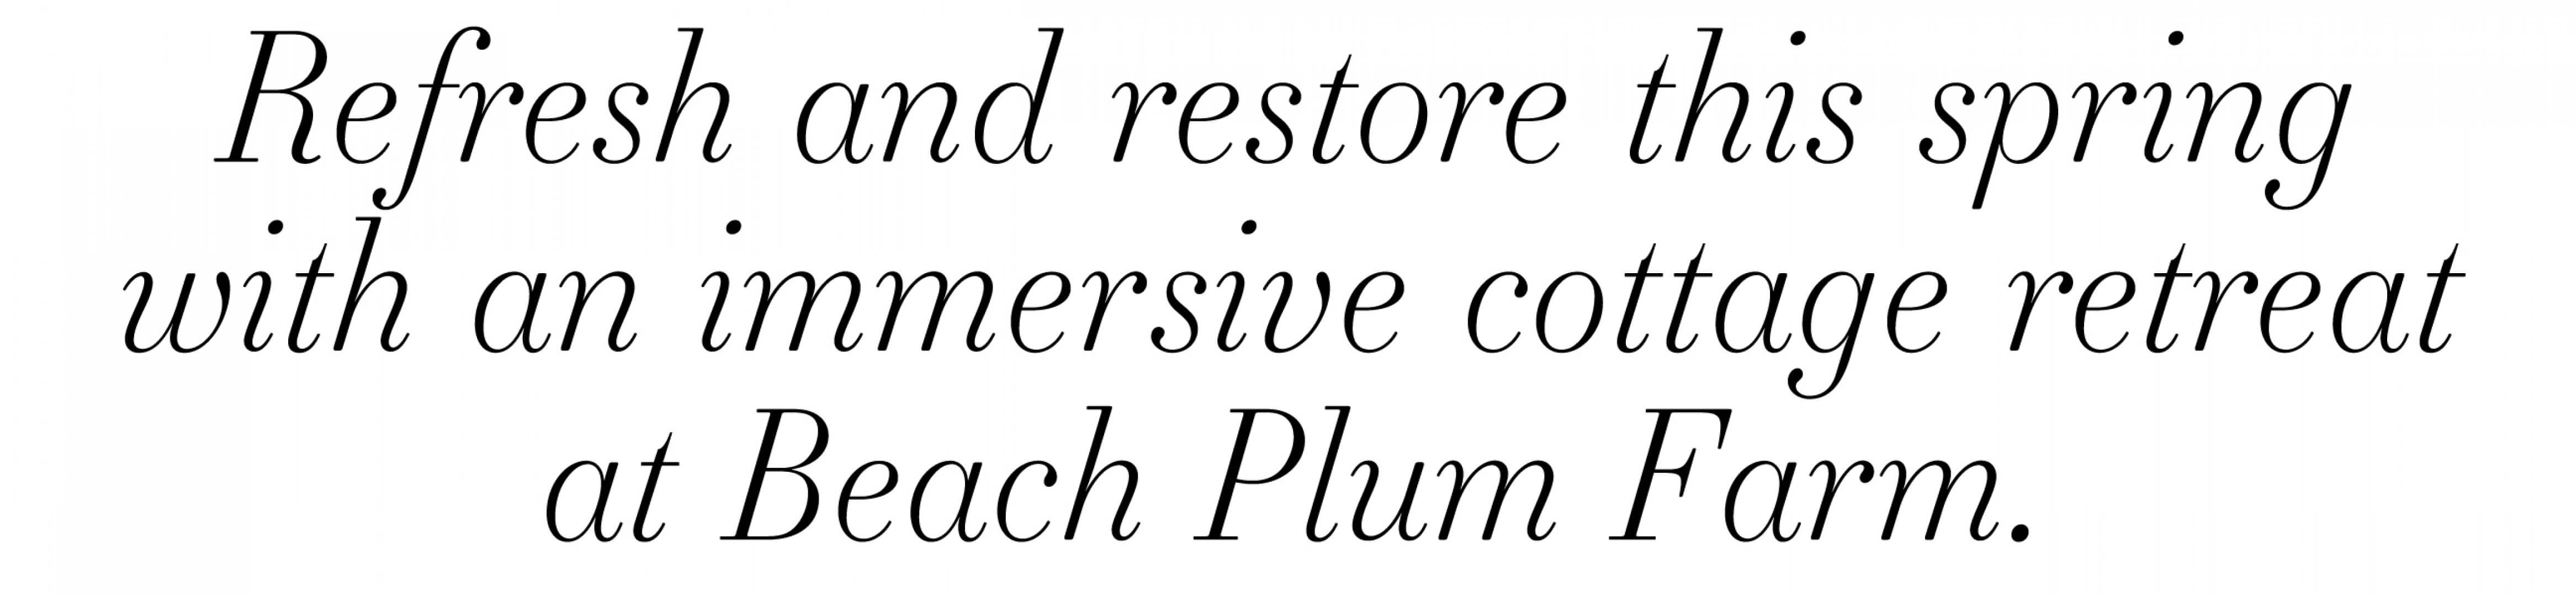 text that reads 'Refresh and restore this spring with an immersive cottage retreat at Beach Plum Farm'